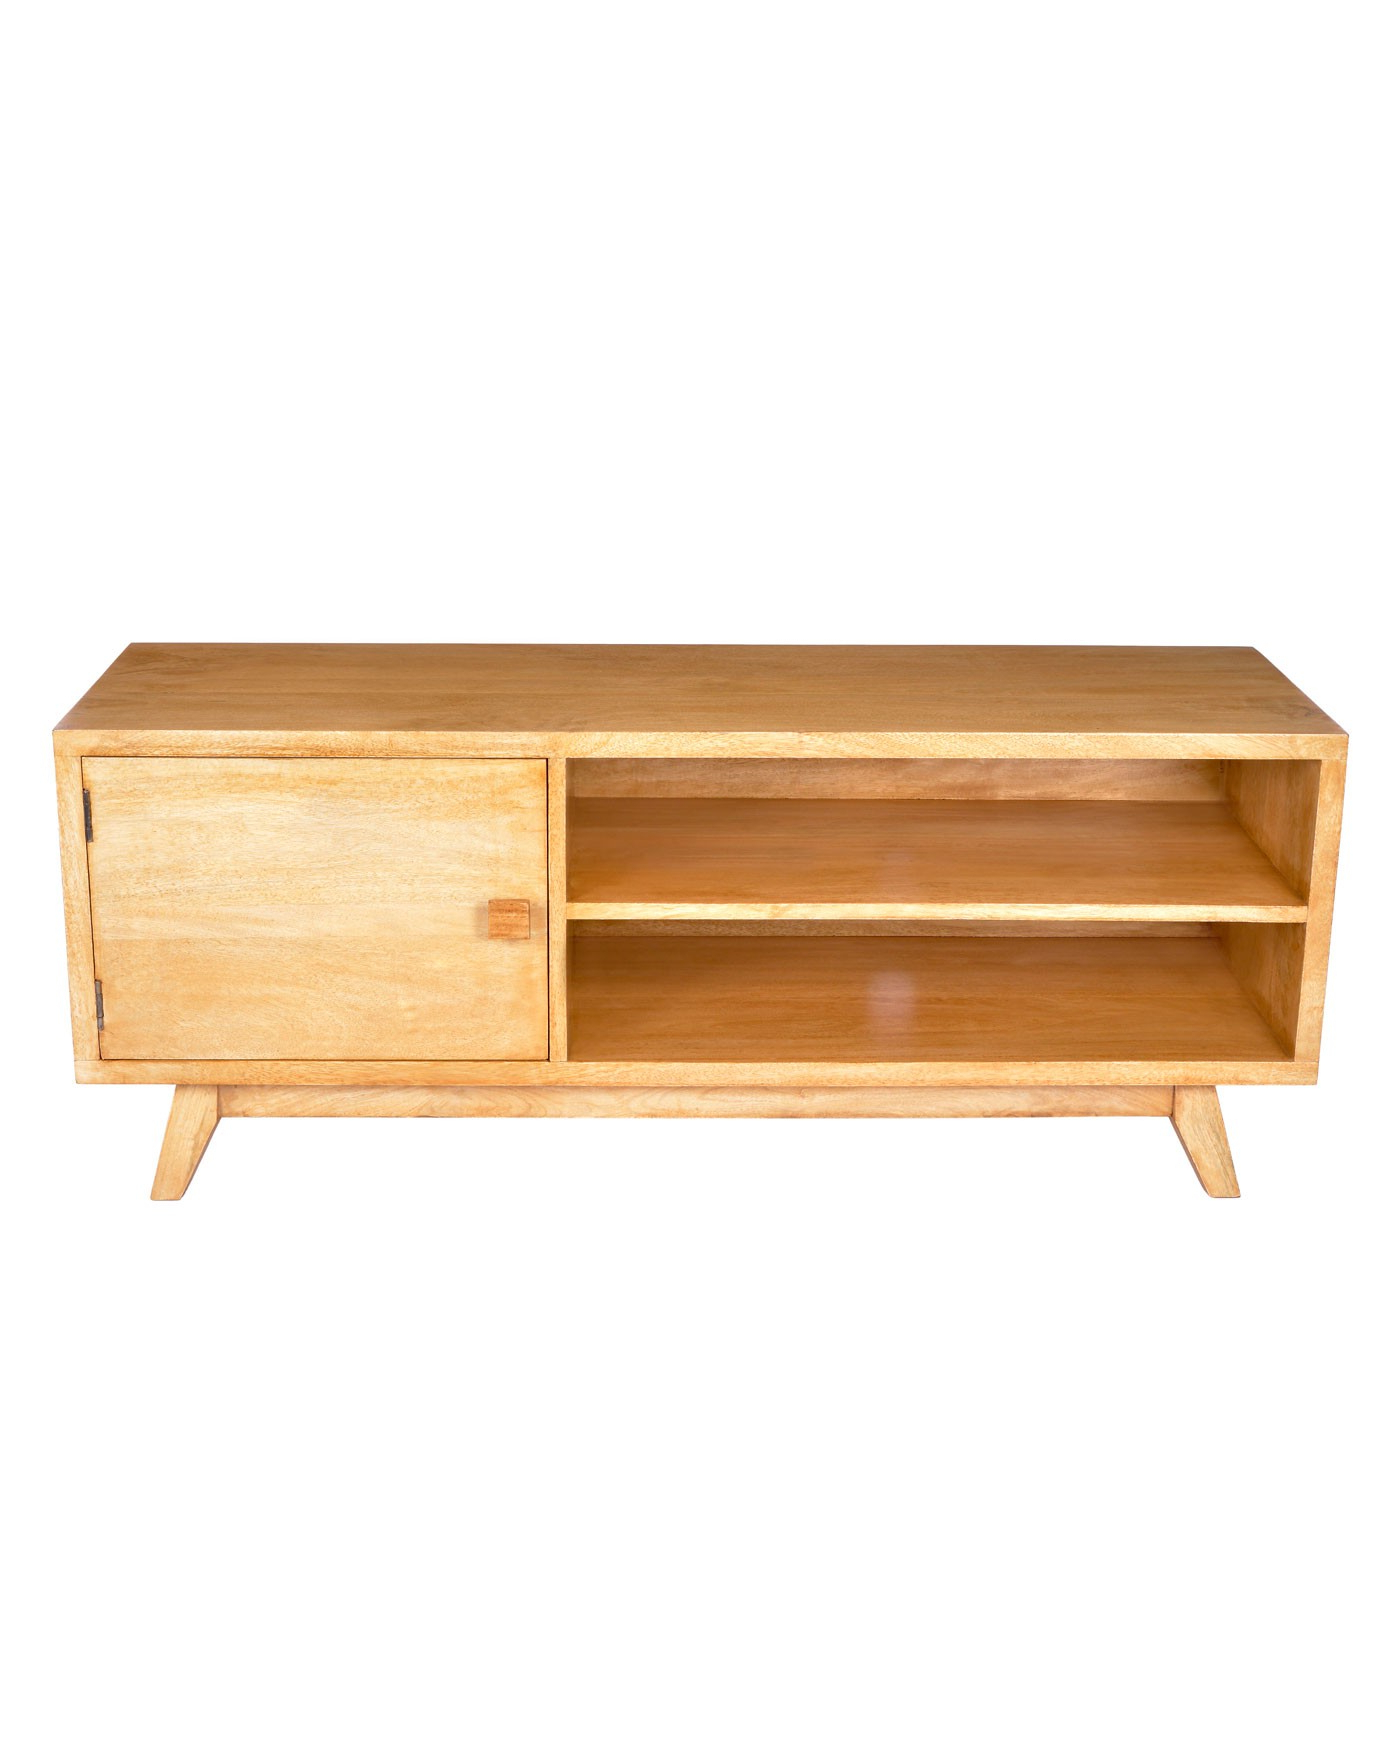 [%Retro Wooden Tv Stand With Shelf 100% Solid Mango Wood Oak Shade Within Well Known Oak Veneer Tv Stands|Oak Veneer Tv Stands In Most Recent Retro Wooden Tv Stand With Shelf 100% Solid Mango Wood Oak Shade|Most Recent Oak Veneer Tv Stands Pertaining To Retro Wooden Tv Stand With Shelf 100% Solid Mango Wood Oak Shade|Most Up To Date Retro Wooden Tv Stand With Shelf 100% Solid Mango Wood Oak Shade With Regard To Oak Veneer Tv Stands%] (View 2 of 20)